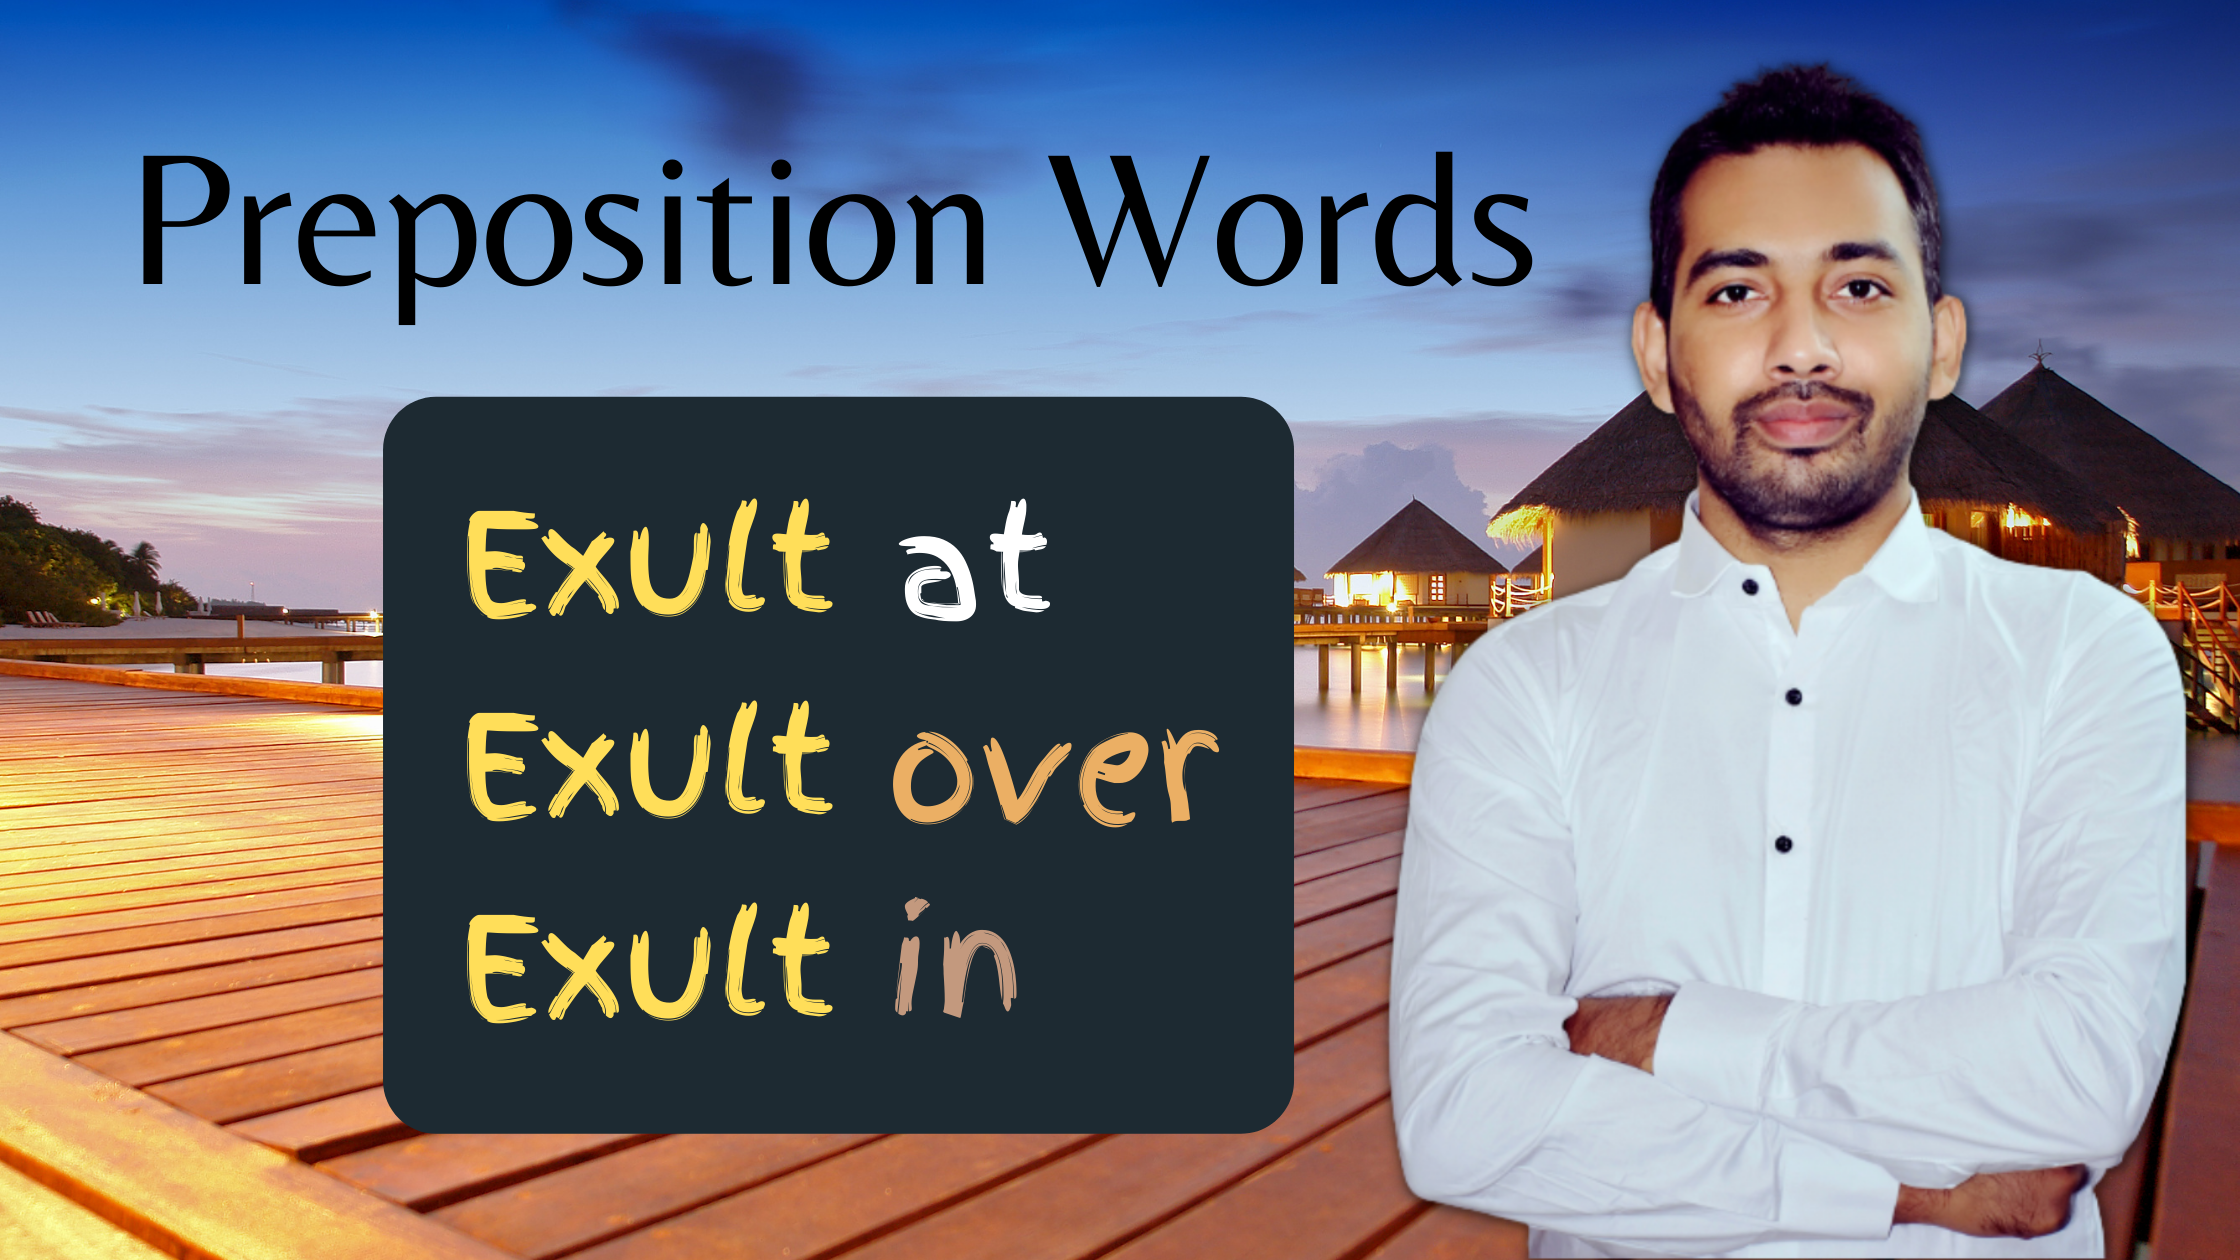 Preposition words with exult